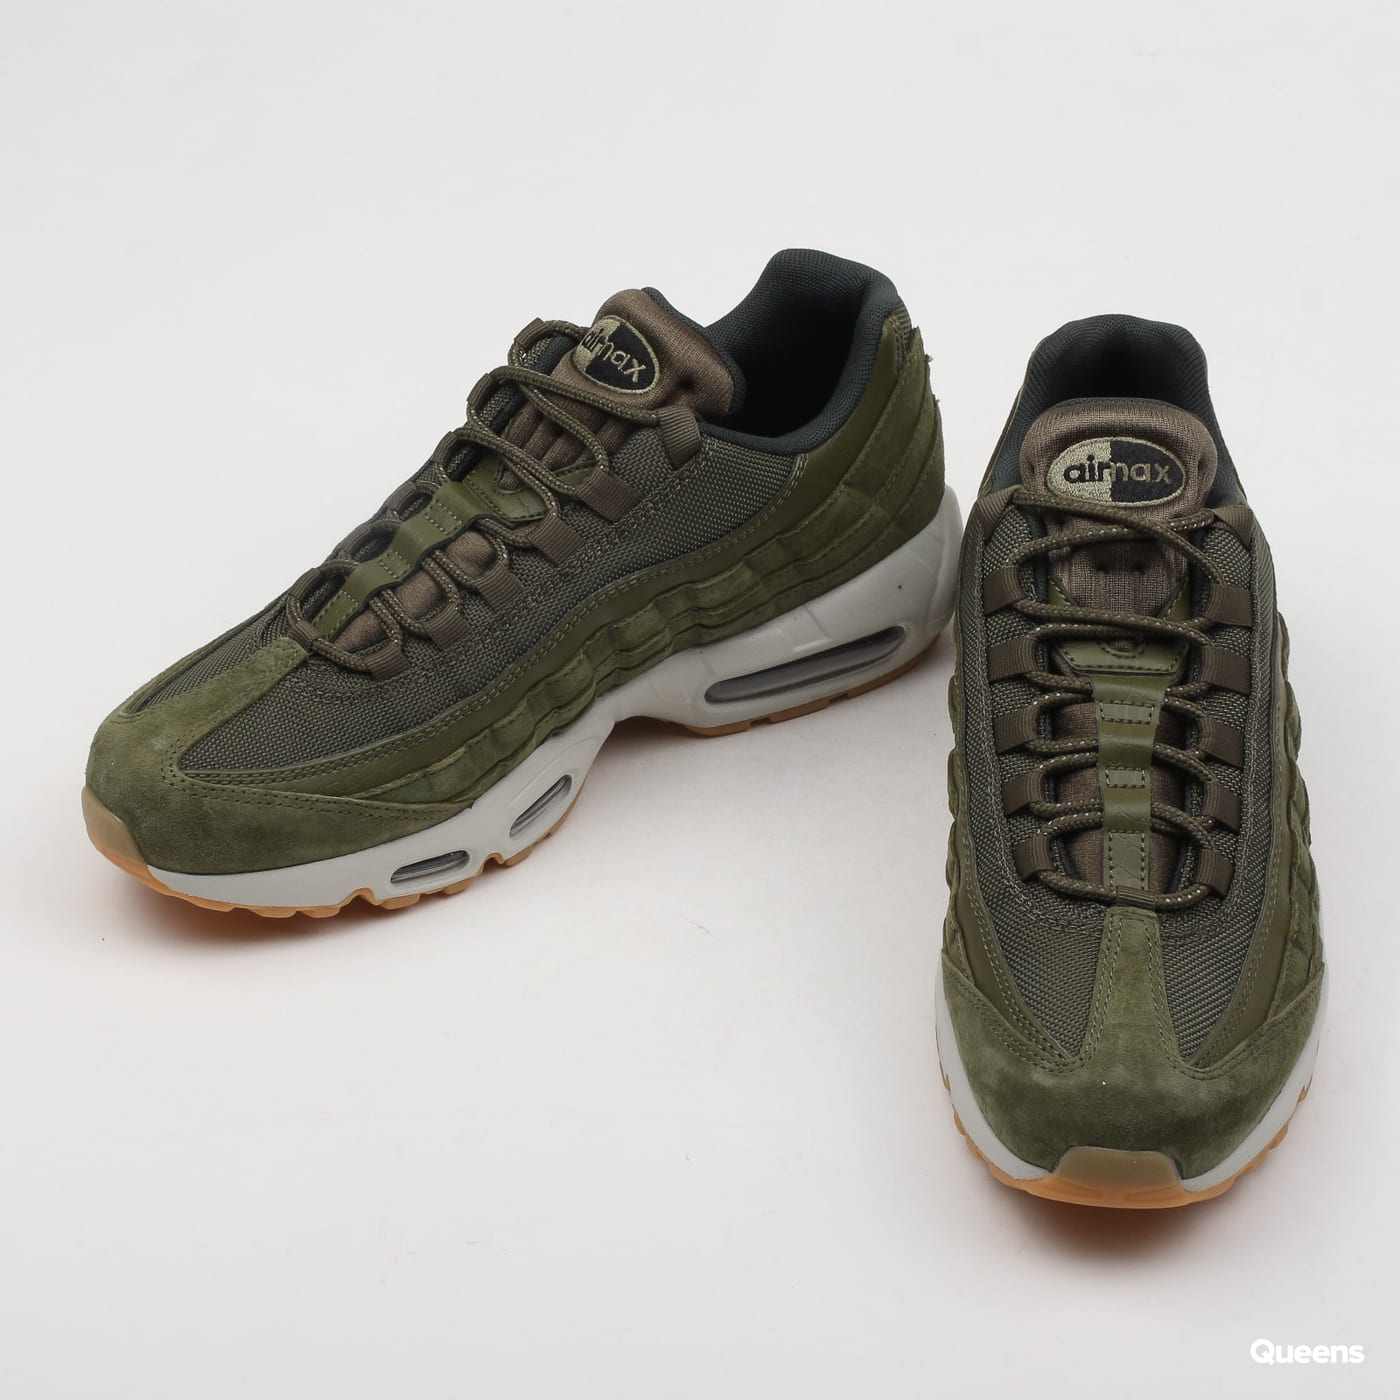 b3bf16a0d5a Zoom in Zoom in Zoom in Zoom in Zoom in. Nike Air Max 95 SE olive canvas ...